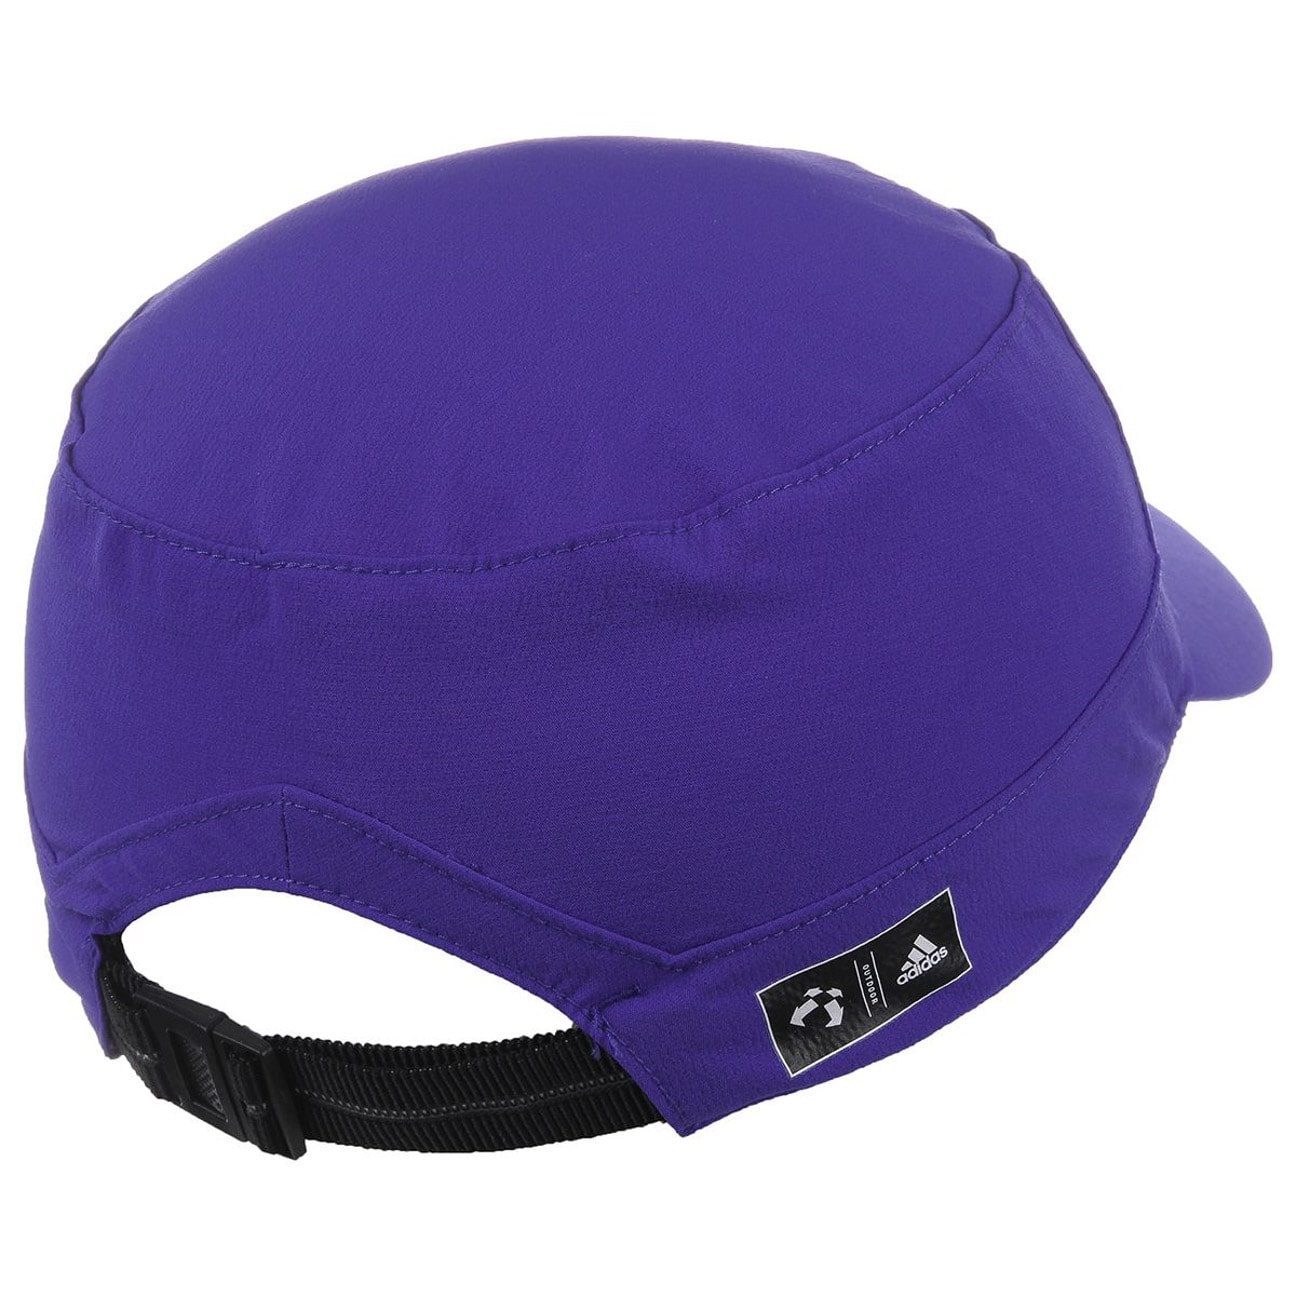 Softshell Cap By Adidas Eur 14 95 Gt Hats Caps